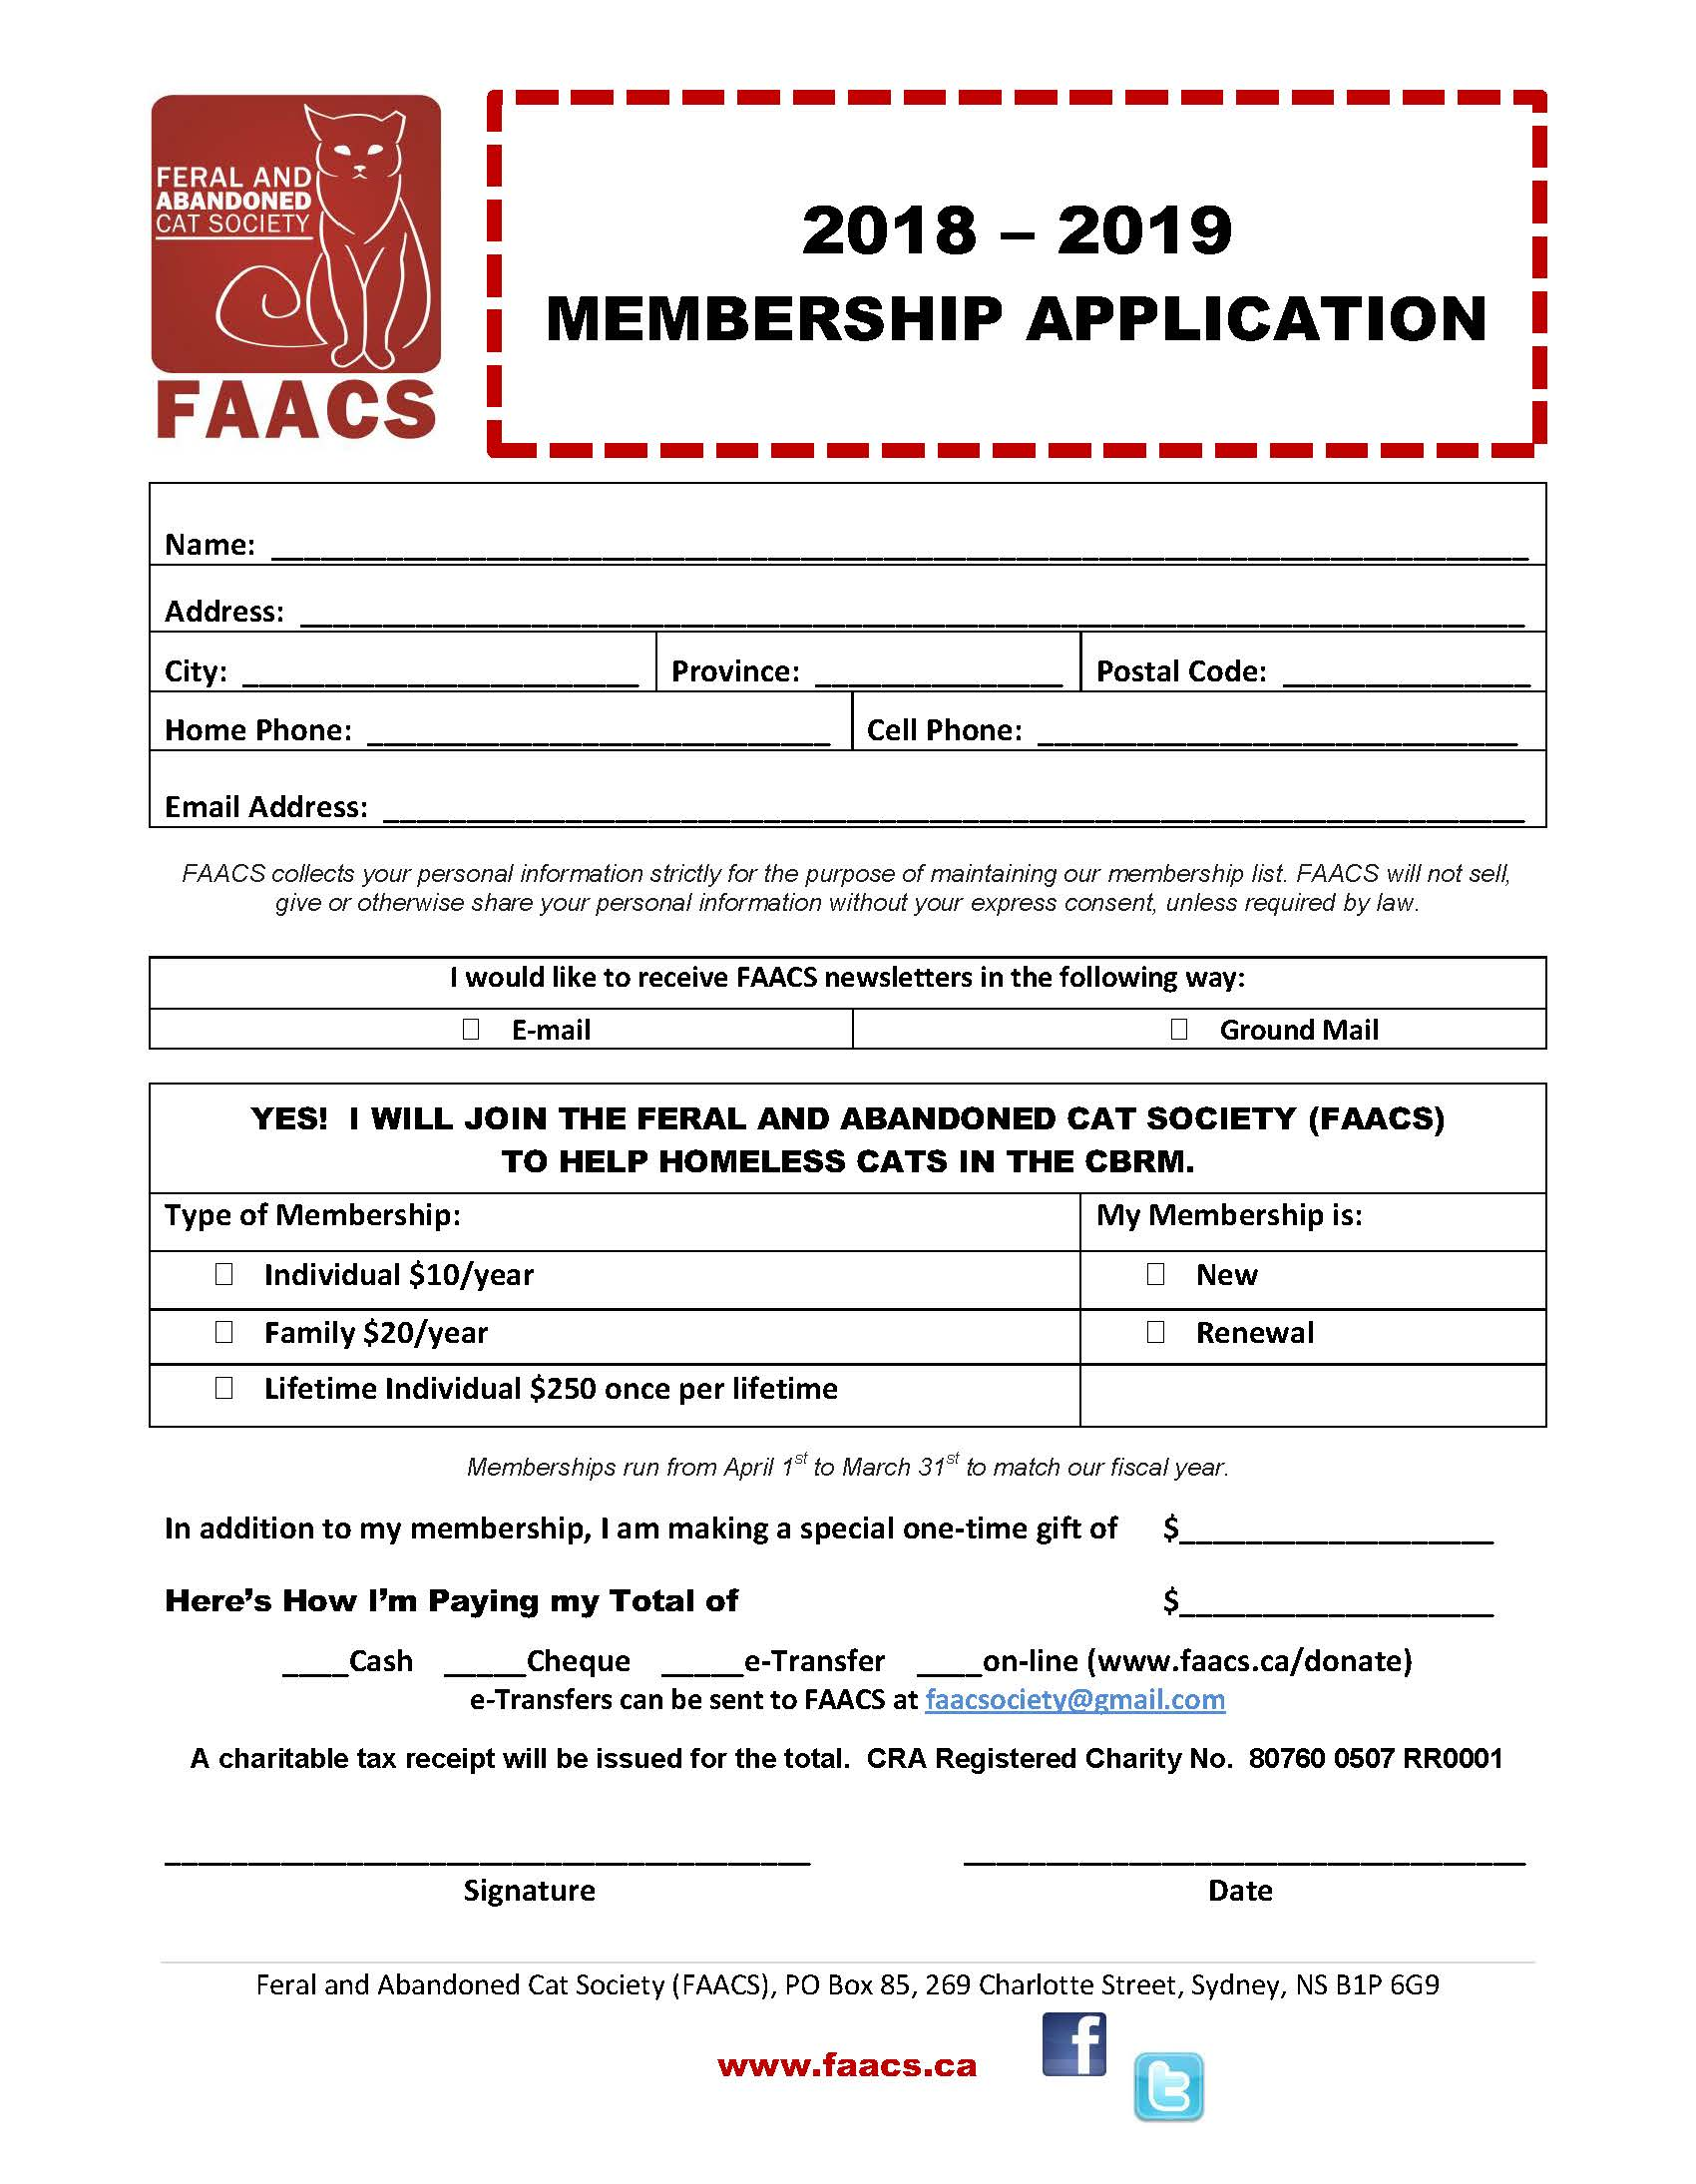 FAACS Annual Membership Form